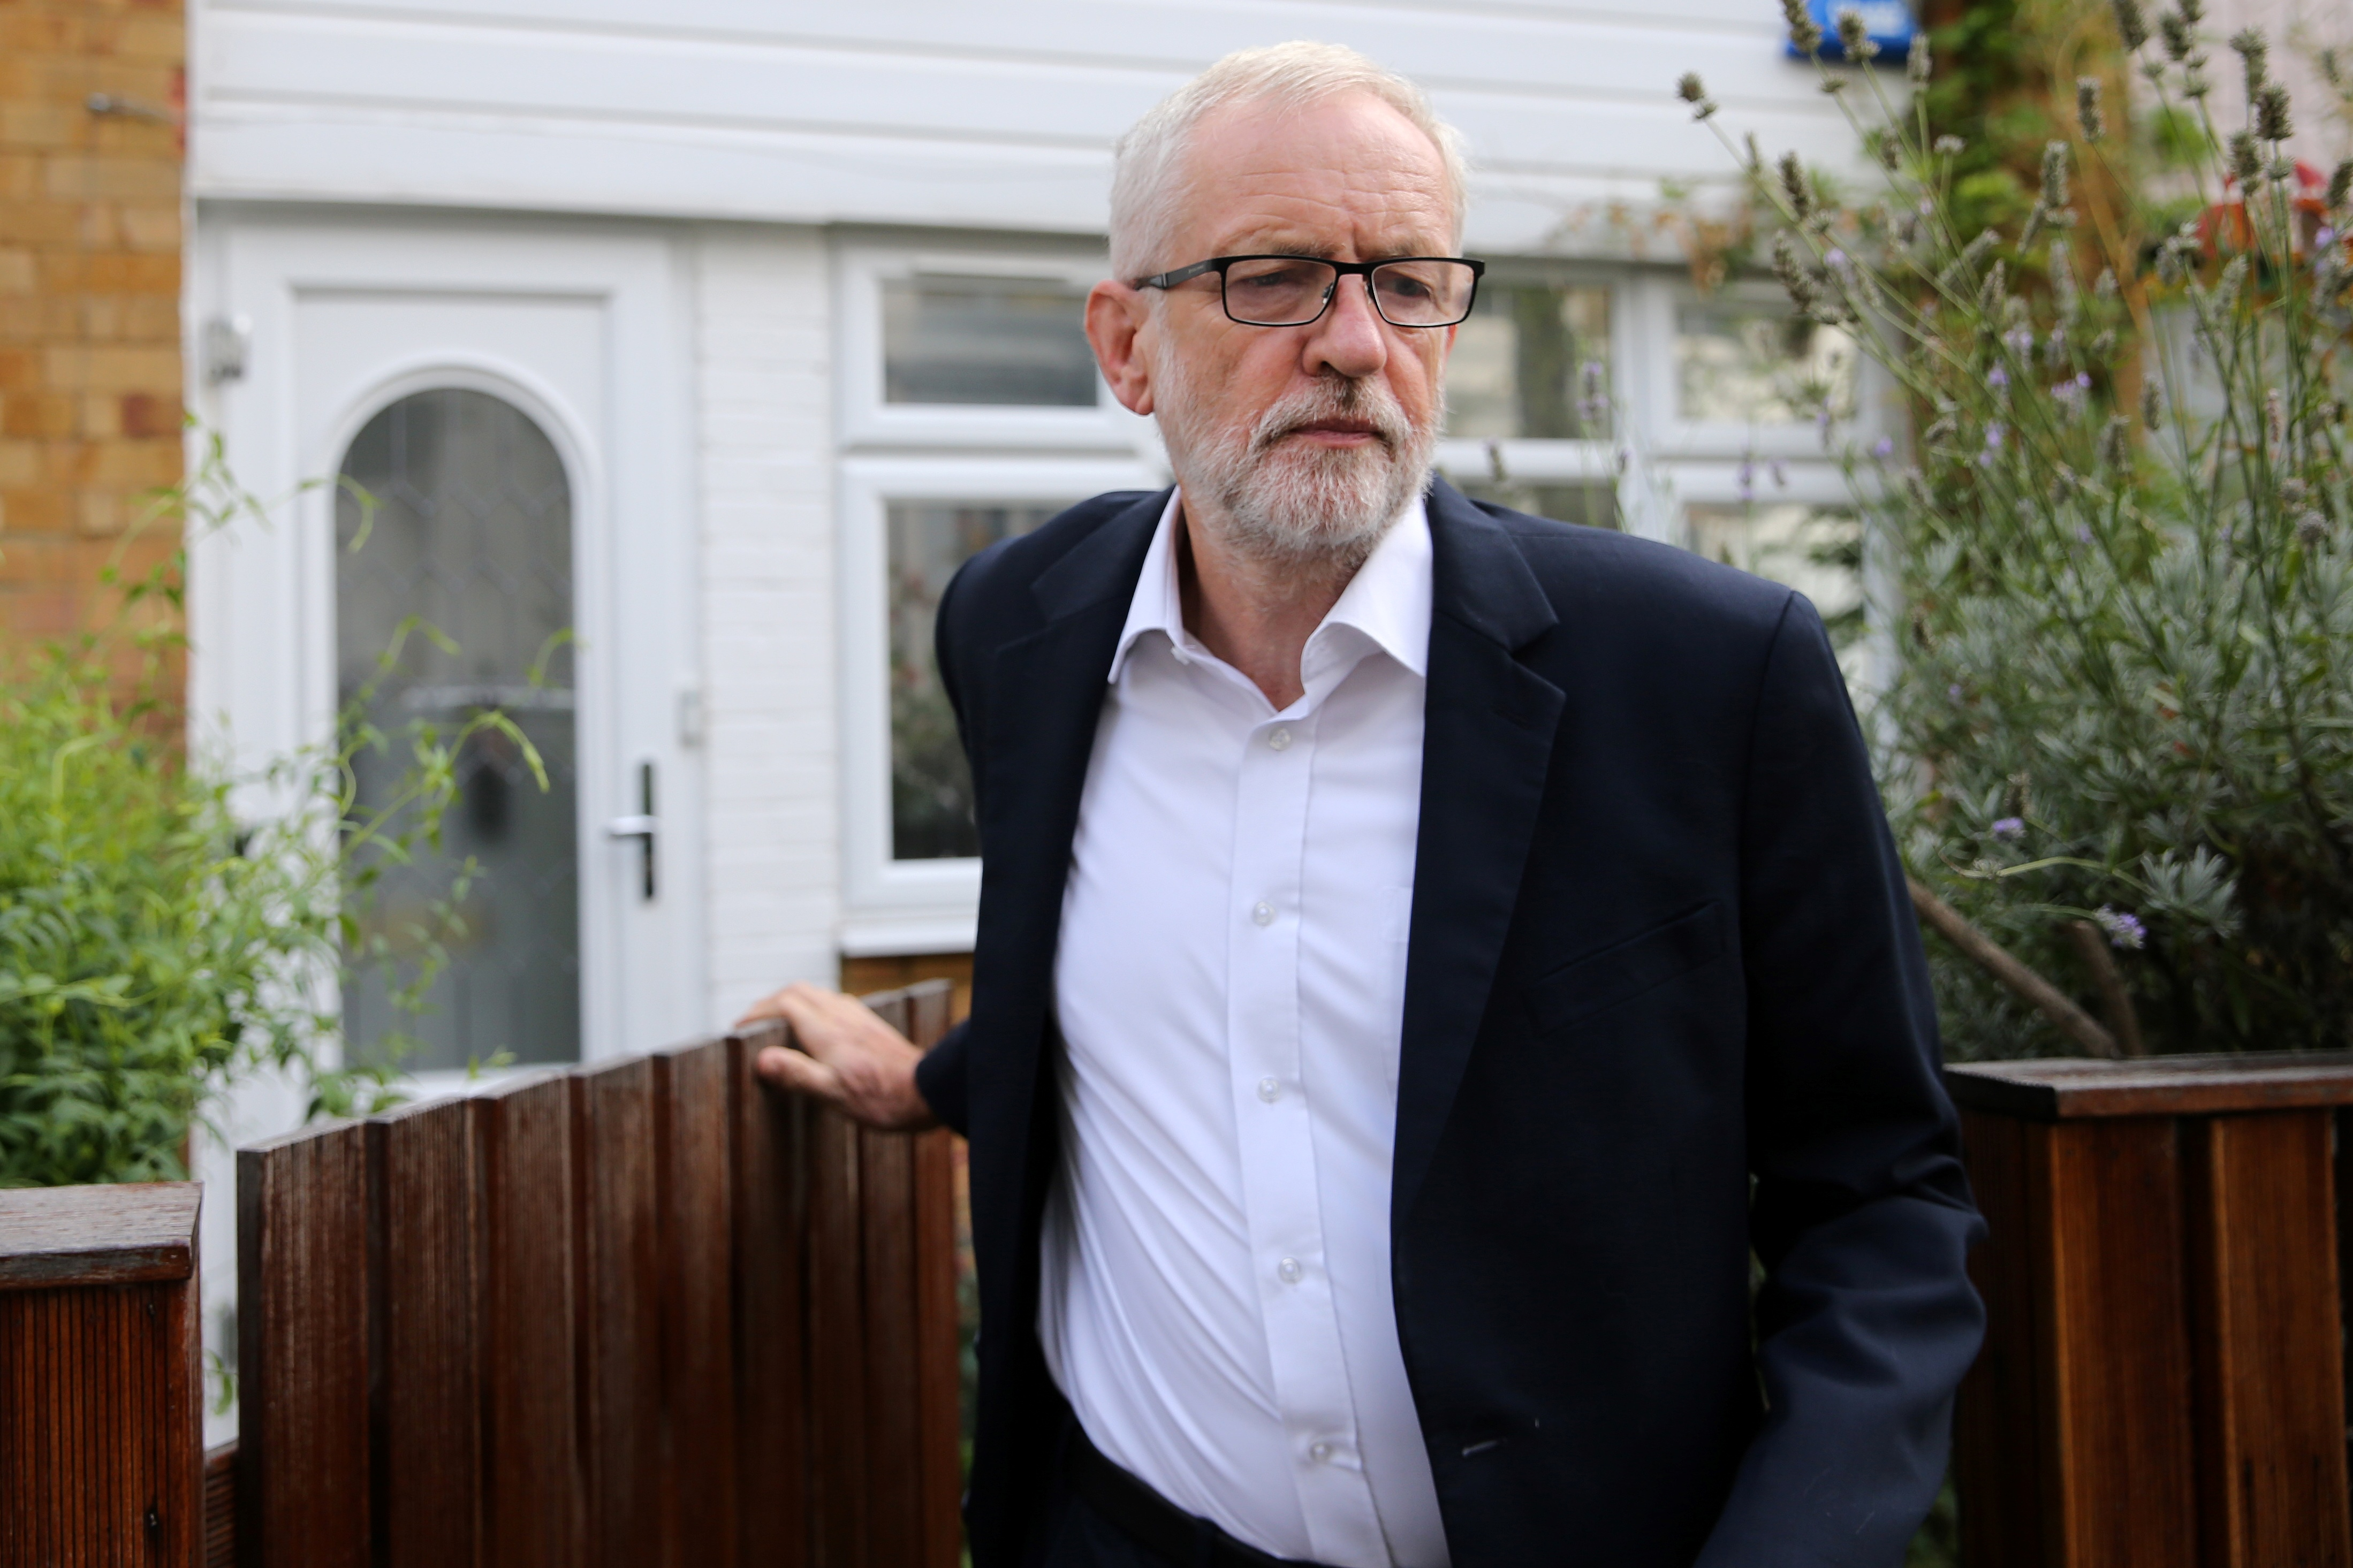 Britain's opposition Labour party leader Jeremy Corbyn leaves his home in north London Tuesday.